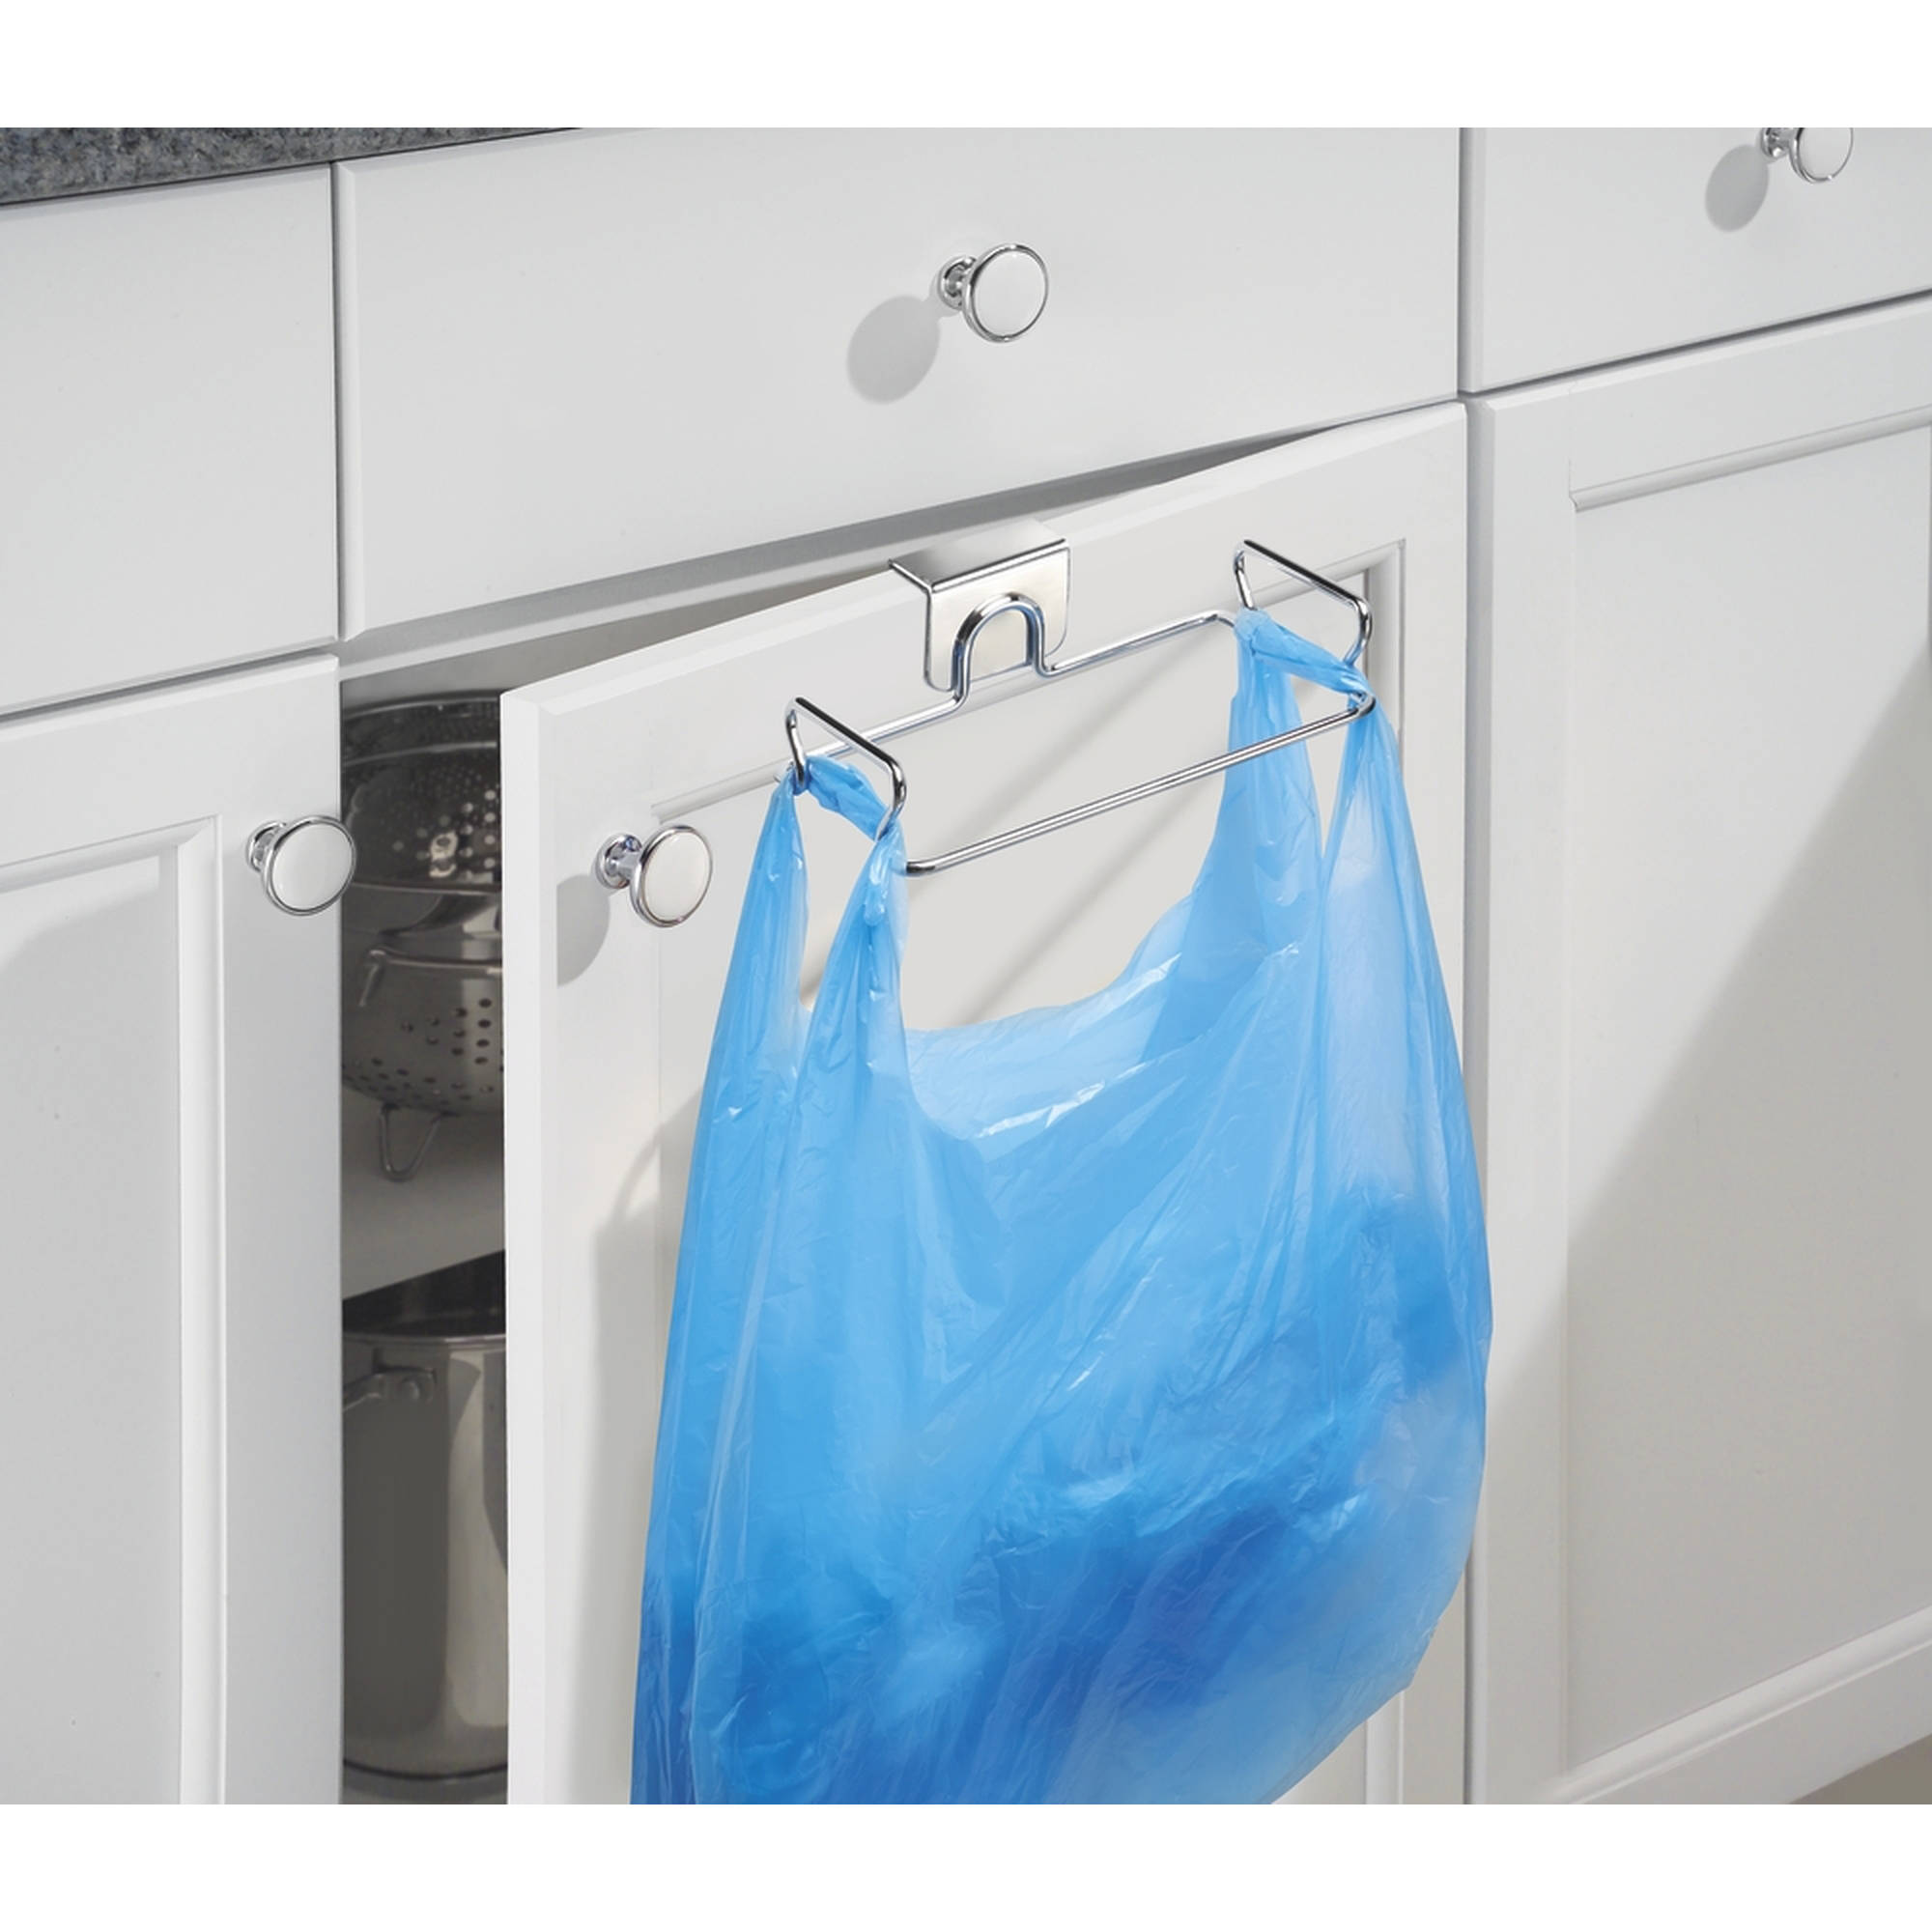 Over The Cabinet Trash Bag Holder - Cabinets Decorating Ideas